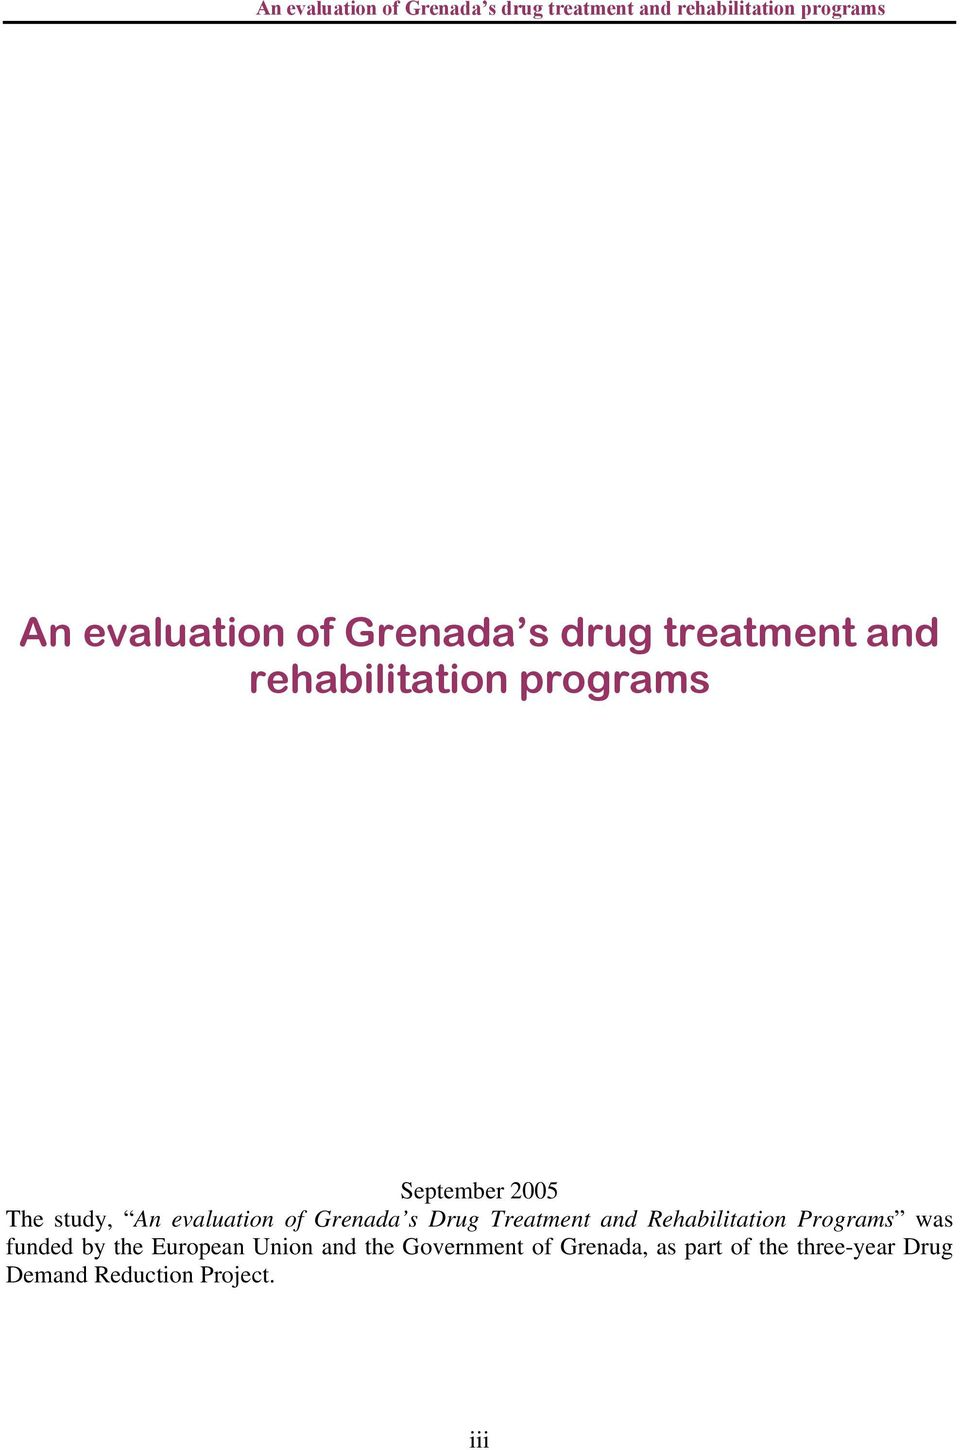 Rehabilitation Programs was funded by the European Union and the